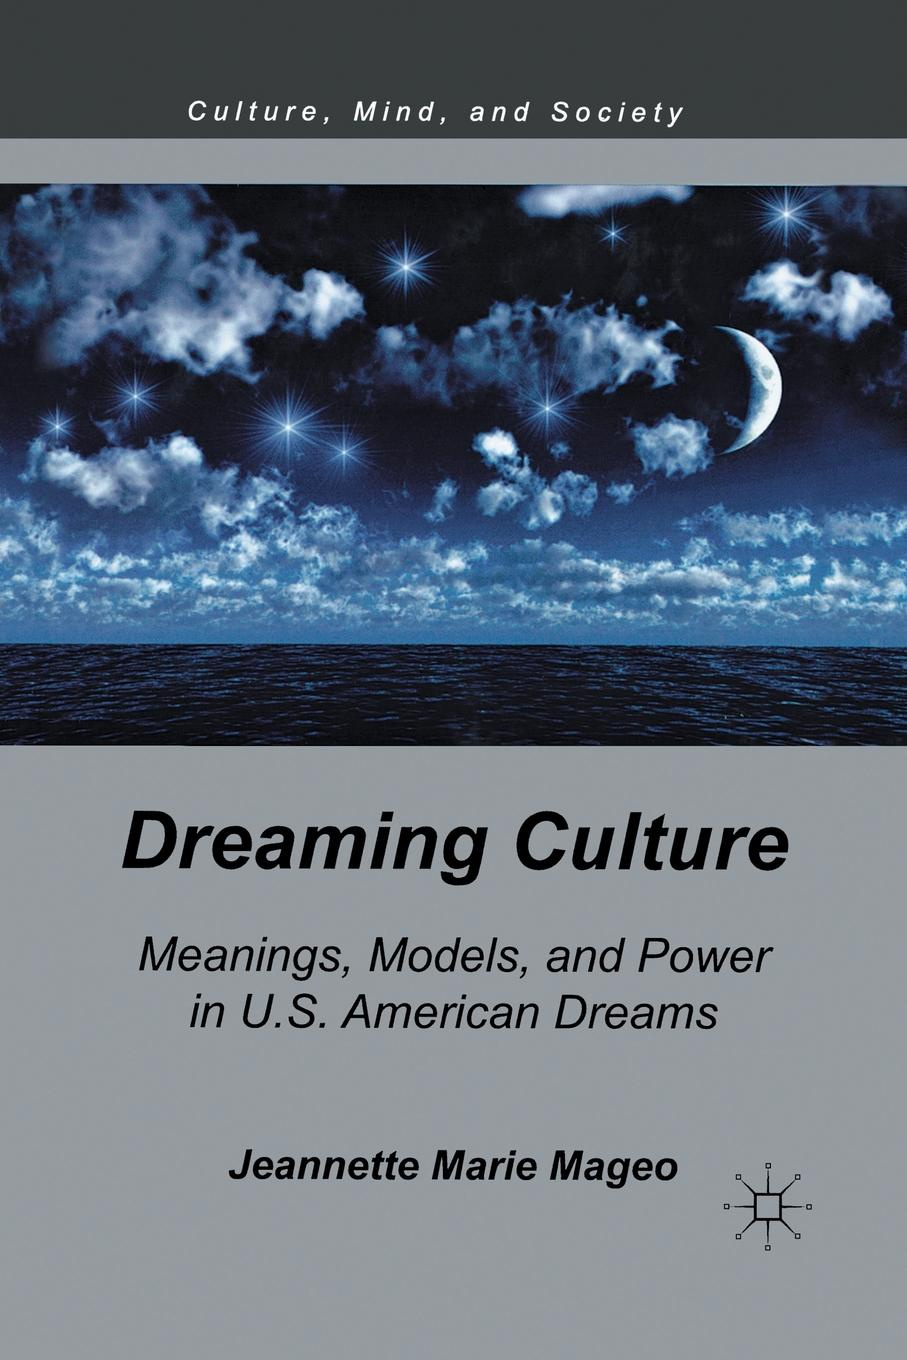 J. Mageo Dreaming Culture. Meanings, Models, and Power in U.S. American Dreams